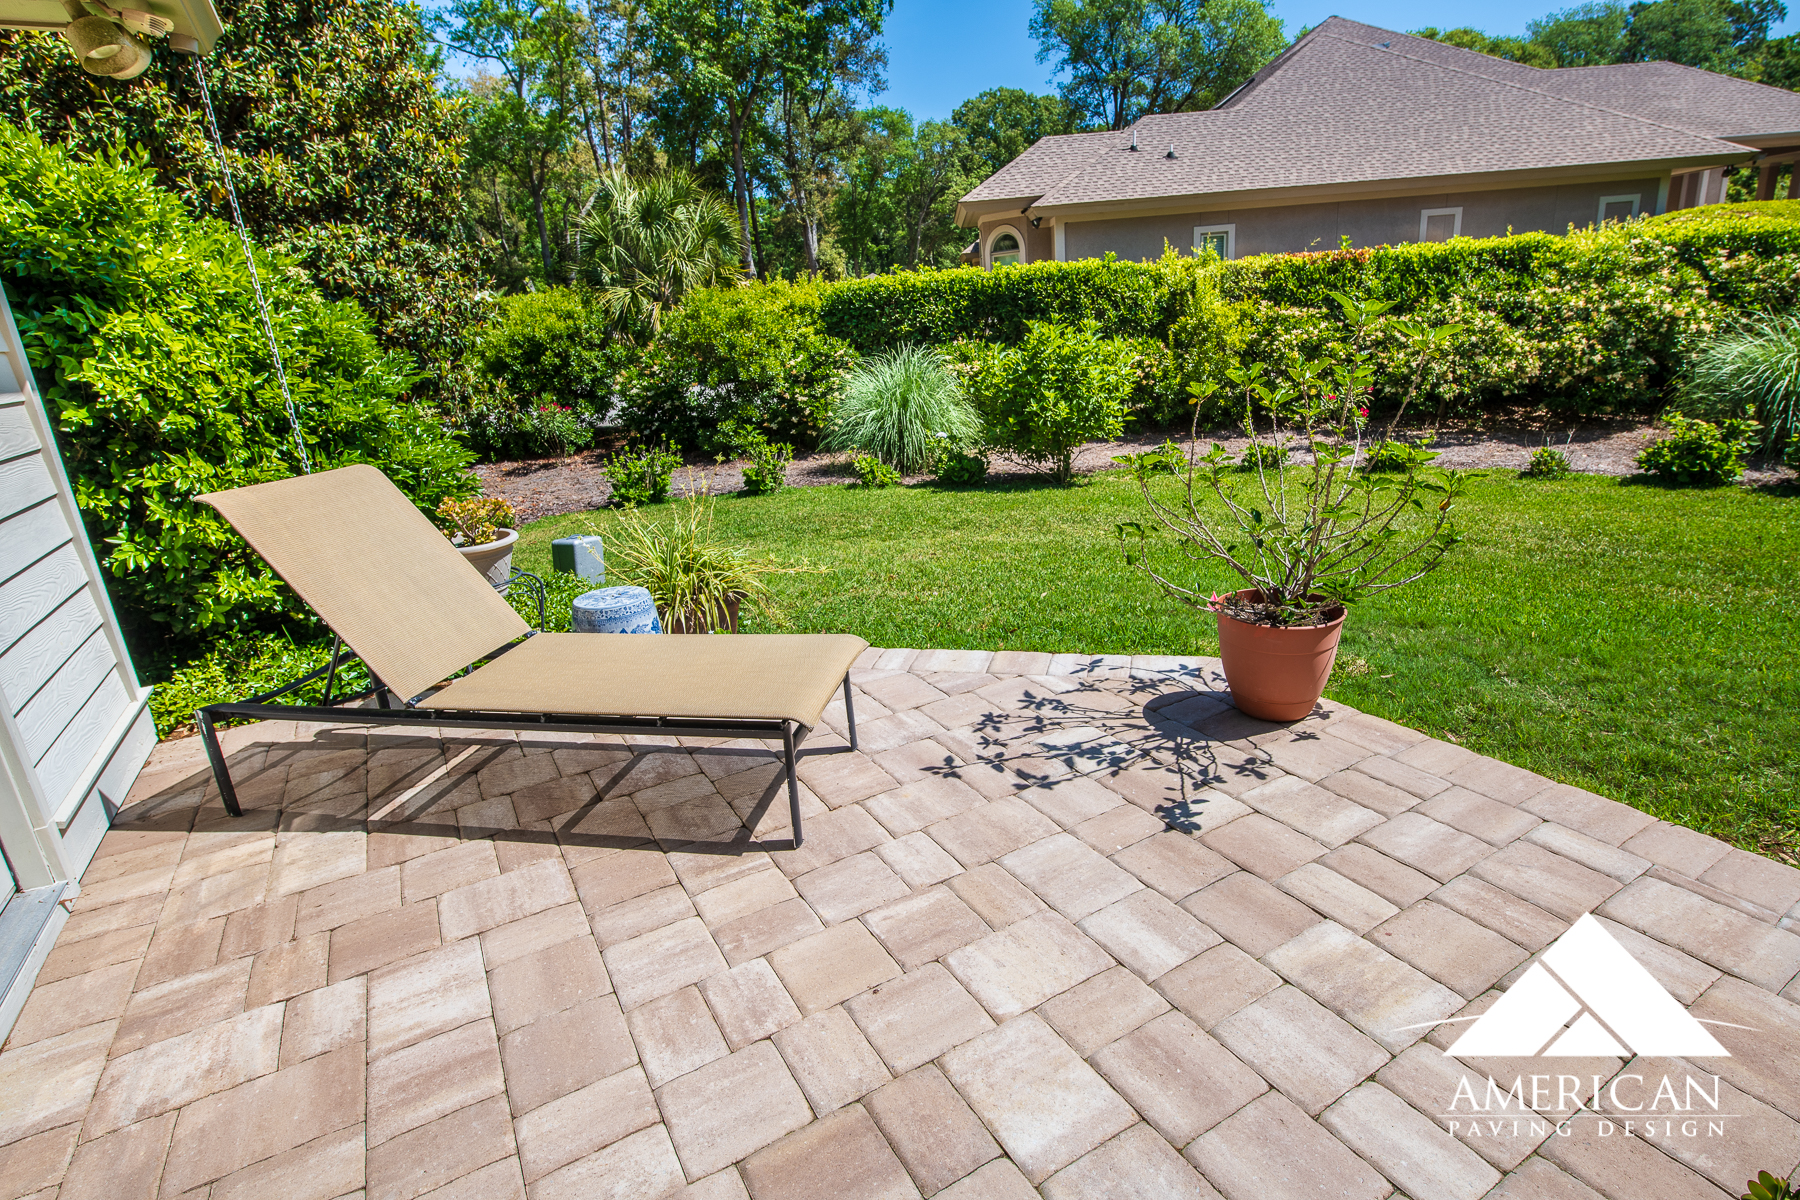 This small paver patio is great for any size backyard! With it's serene color scheme and perfect design, you can't go wrong with a traditional, brick paver patio!